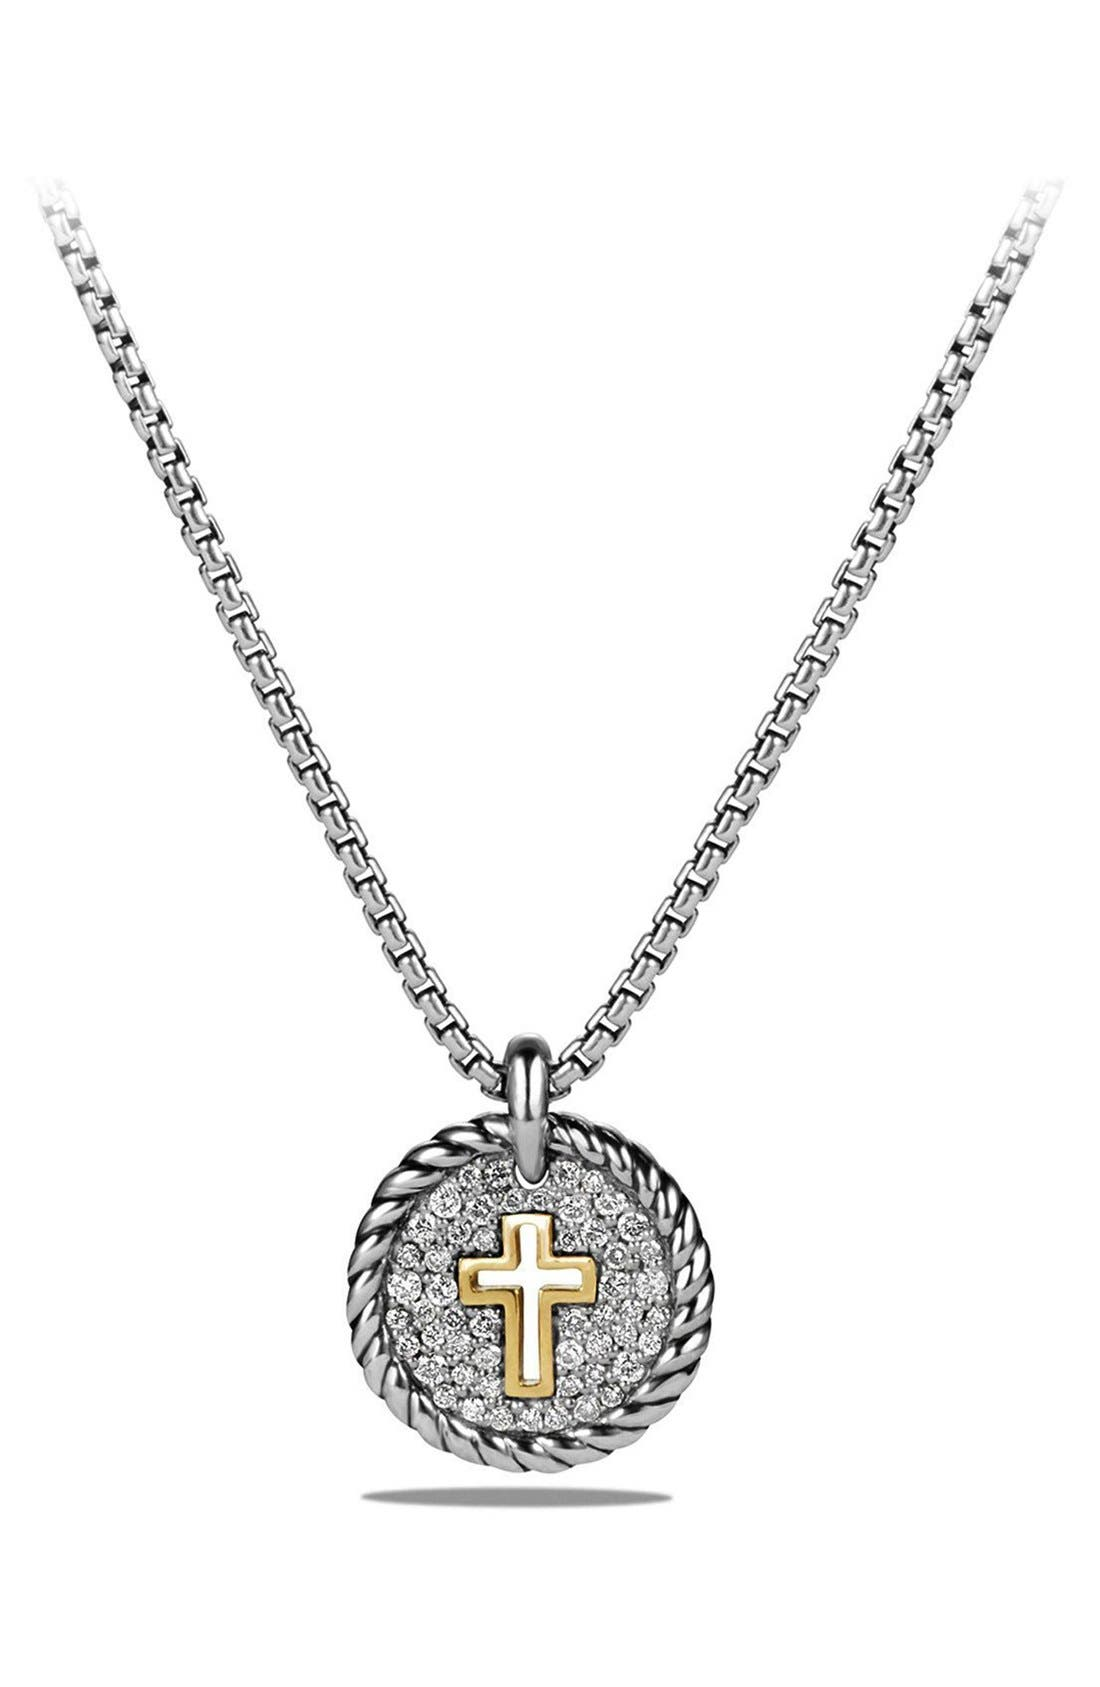 DAVID YURMAN 'Cable Collectibles' Cross Charm Necklace with